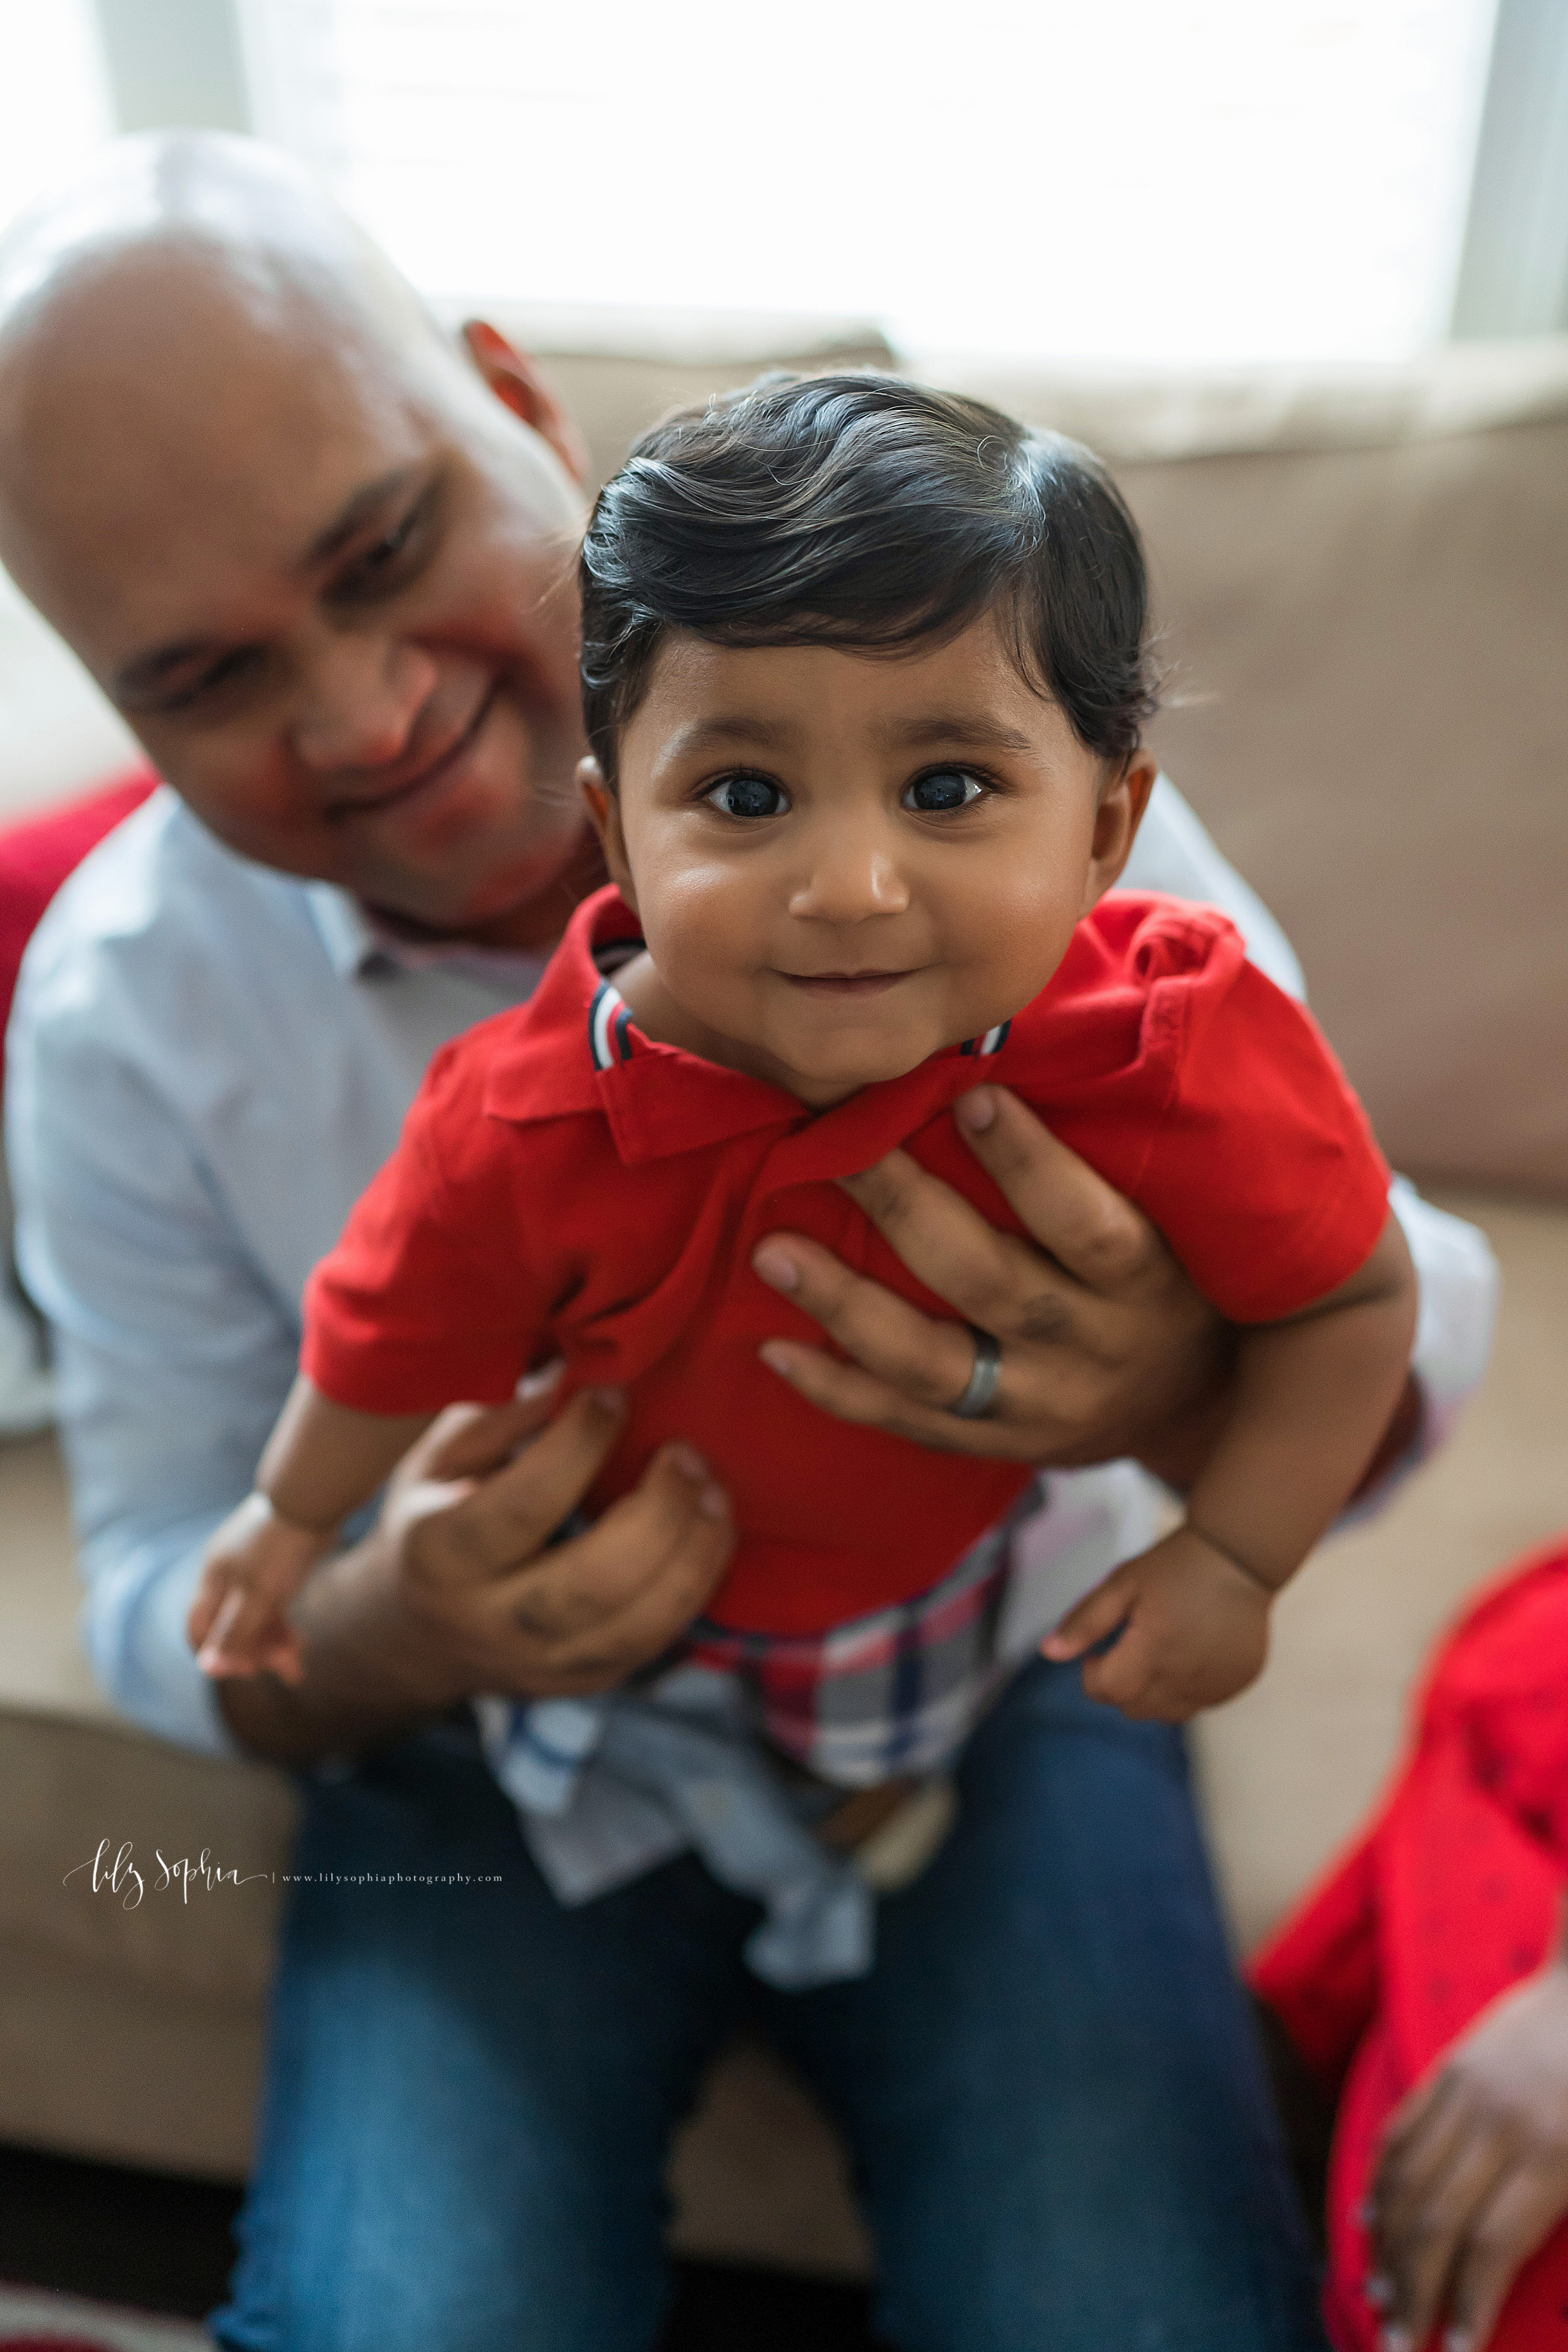 atlanta-brookhaven-east-cobb-marietta-candler-park-sandy-springs-buckhead-virginia-highlands-west-end-decatur-lily-sophia-photography-in-home-lifestyle-session-eight-month-milestone-indian-family_1649.jpg